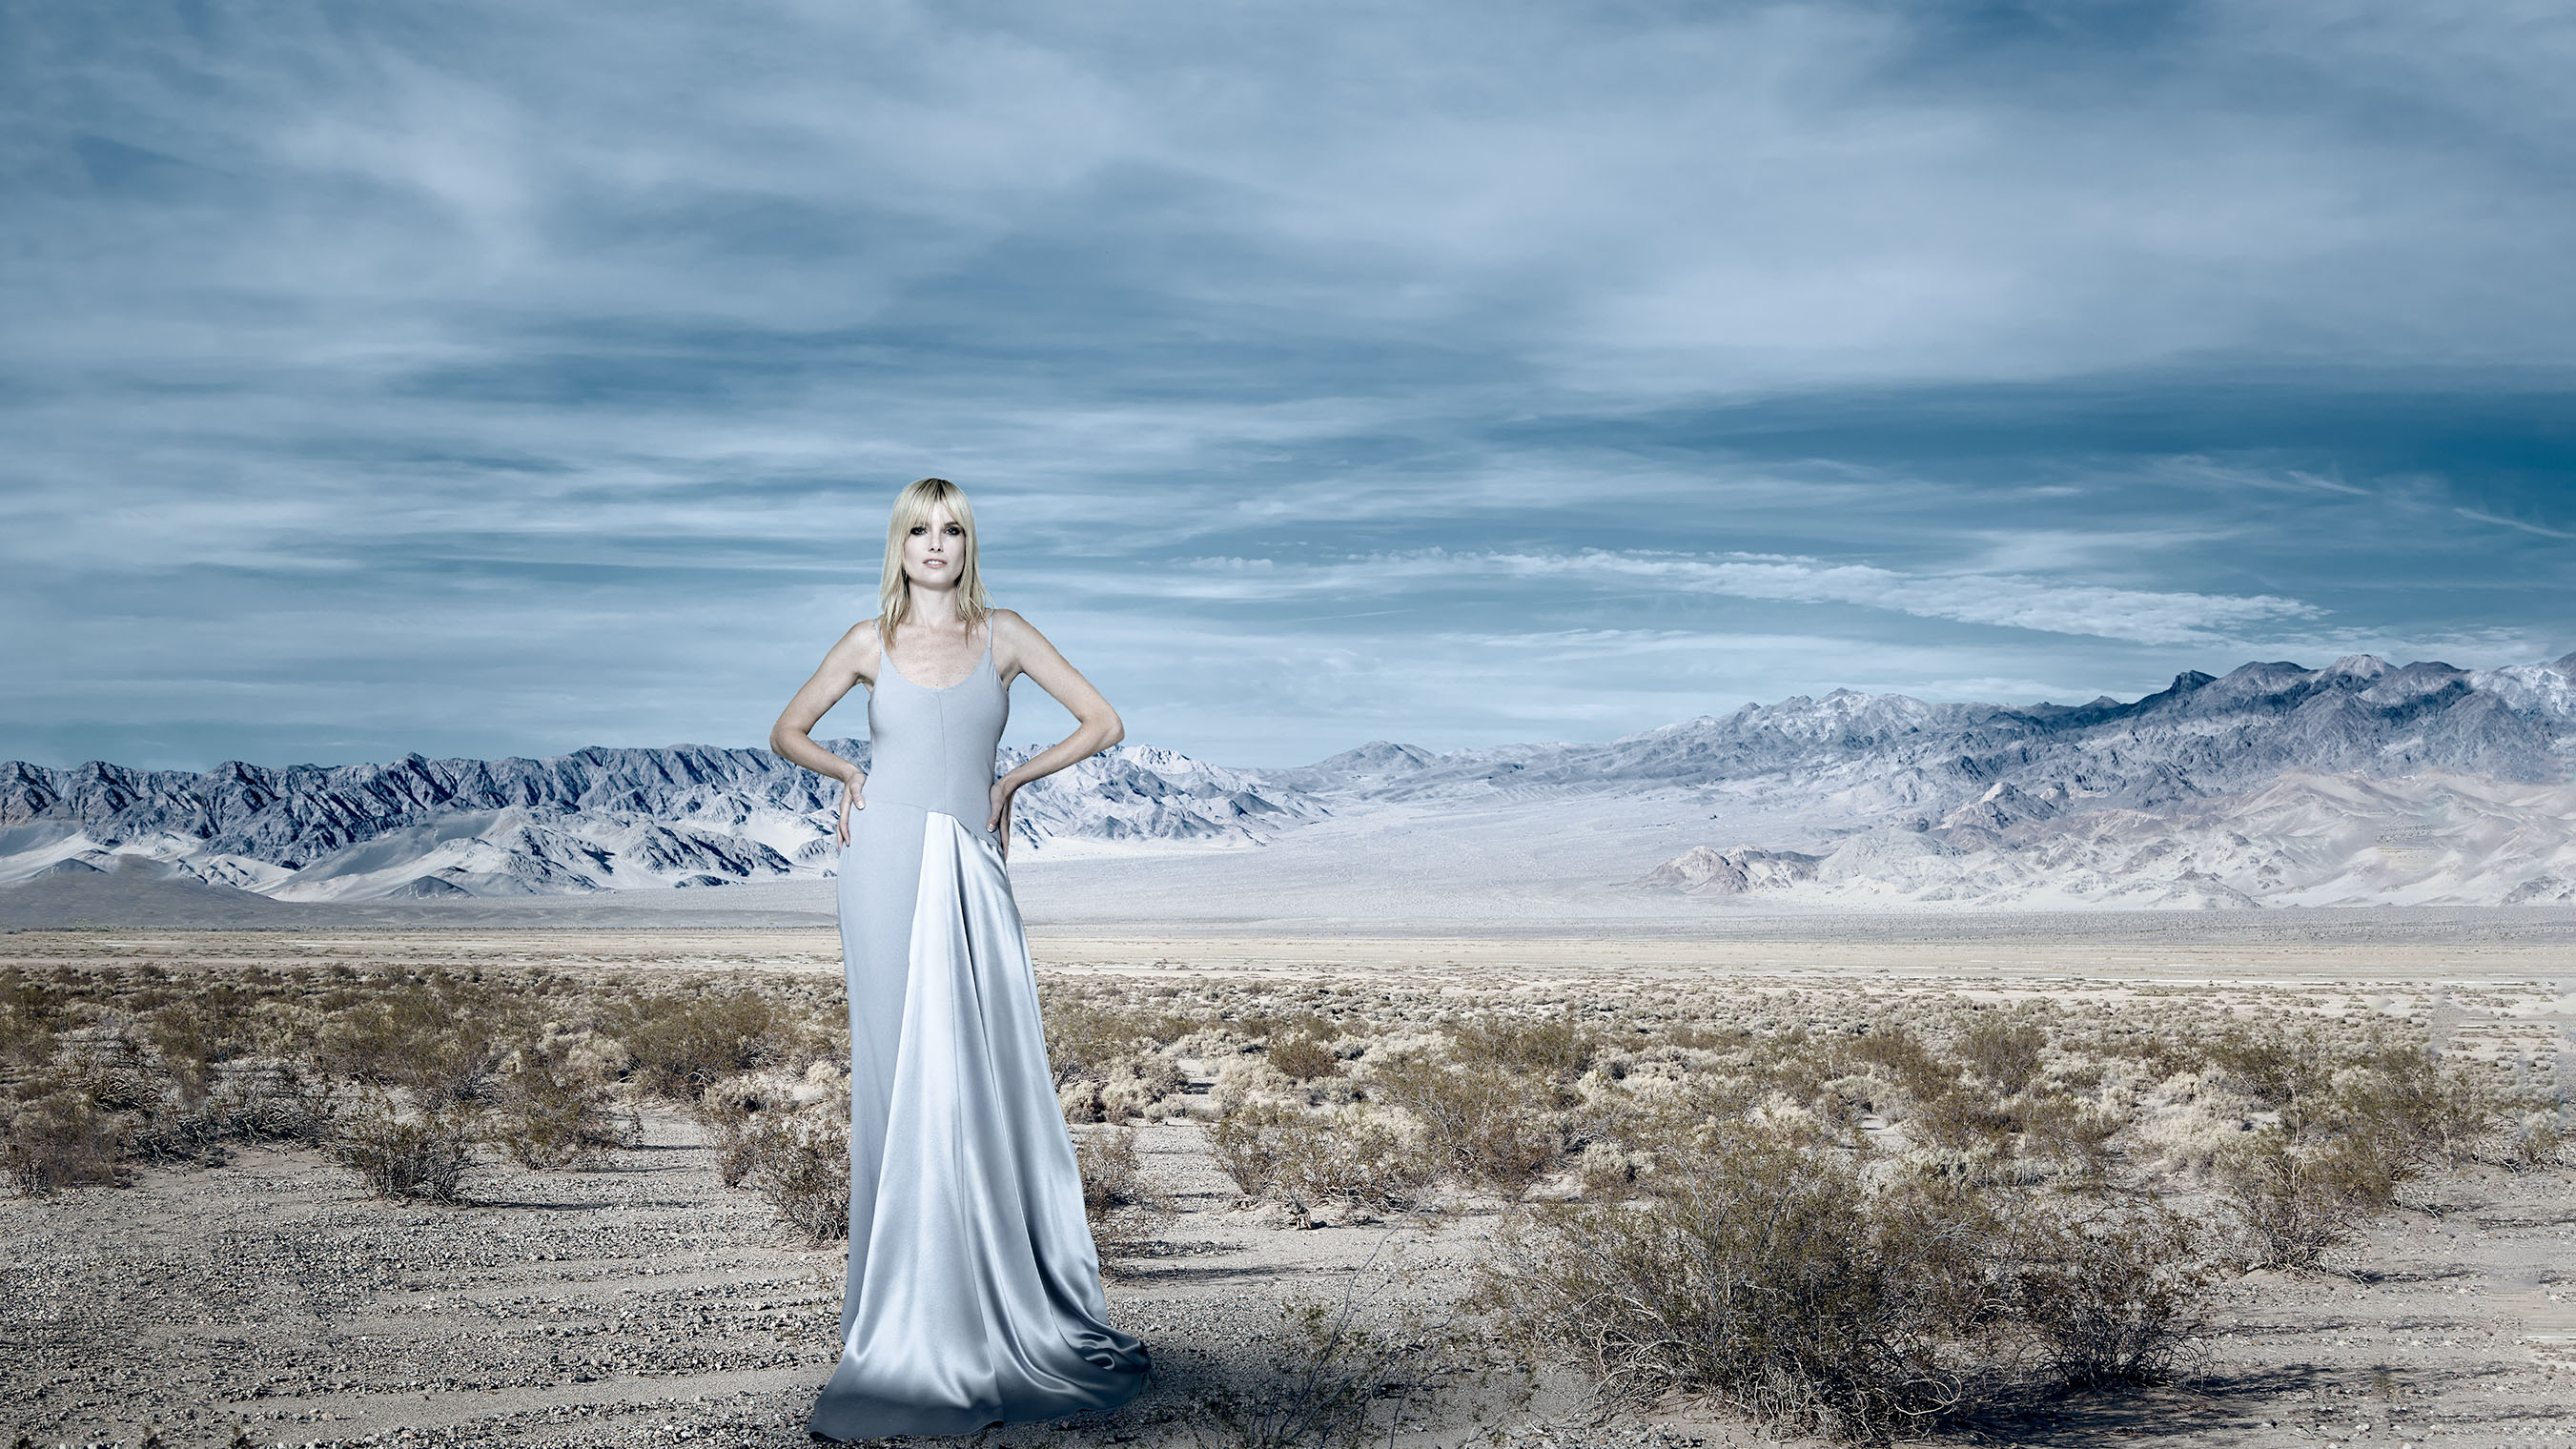 Fashion Photography and Landscape - California and New York